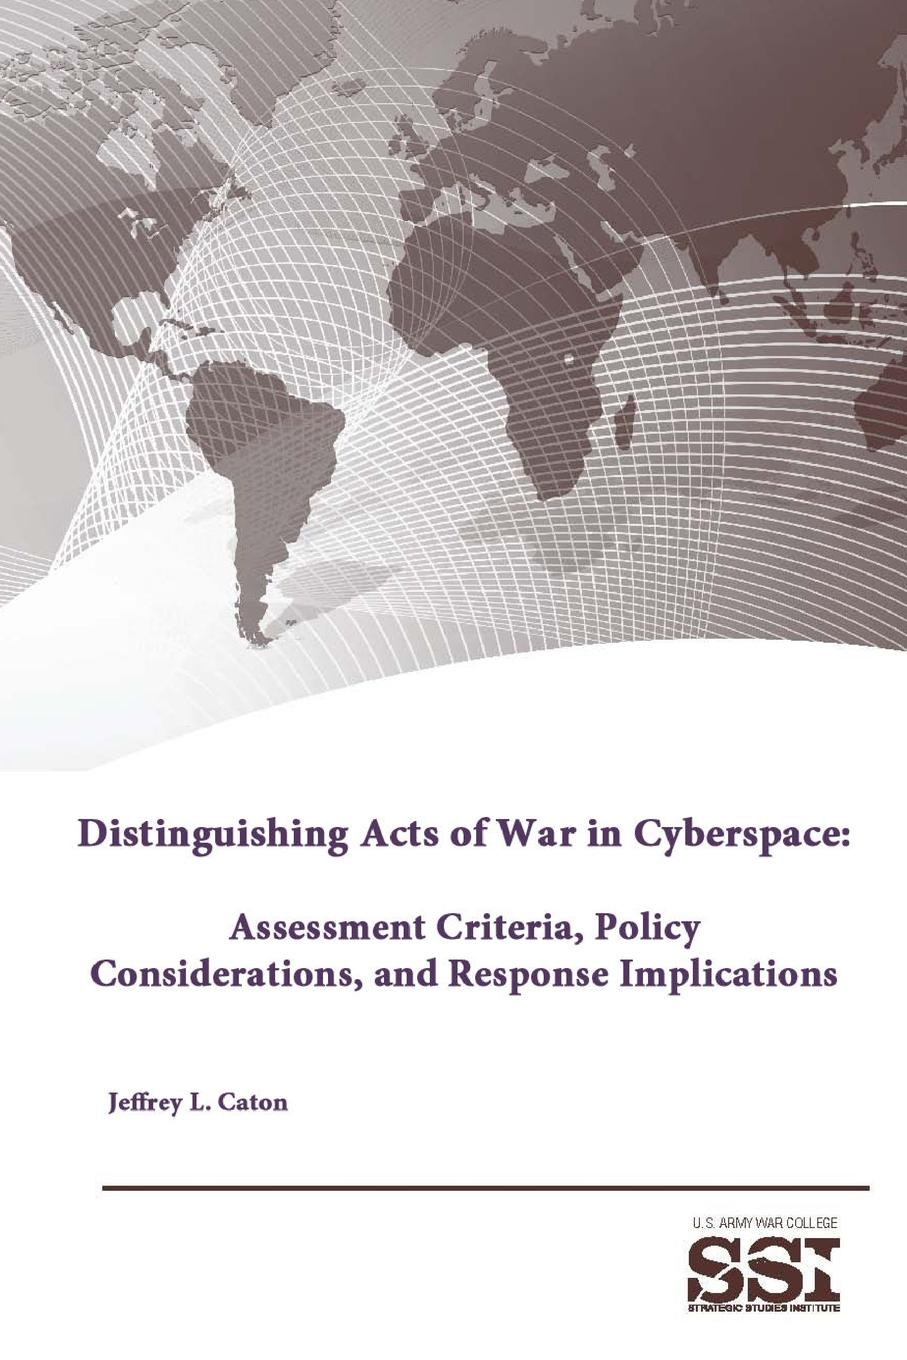 Strategic Studies Institute, U.S. Army War College, Jeffrey L. Caton Distinguishing Acts of in Cyberspace. Assessment Criteria, Policy Considerations, and Response Implications